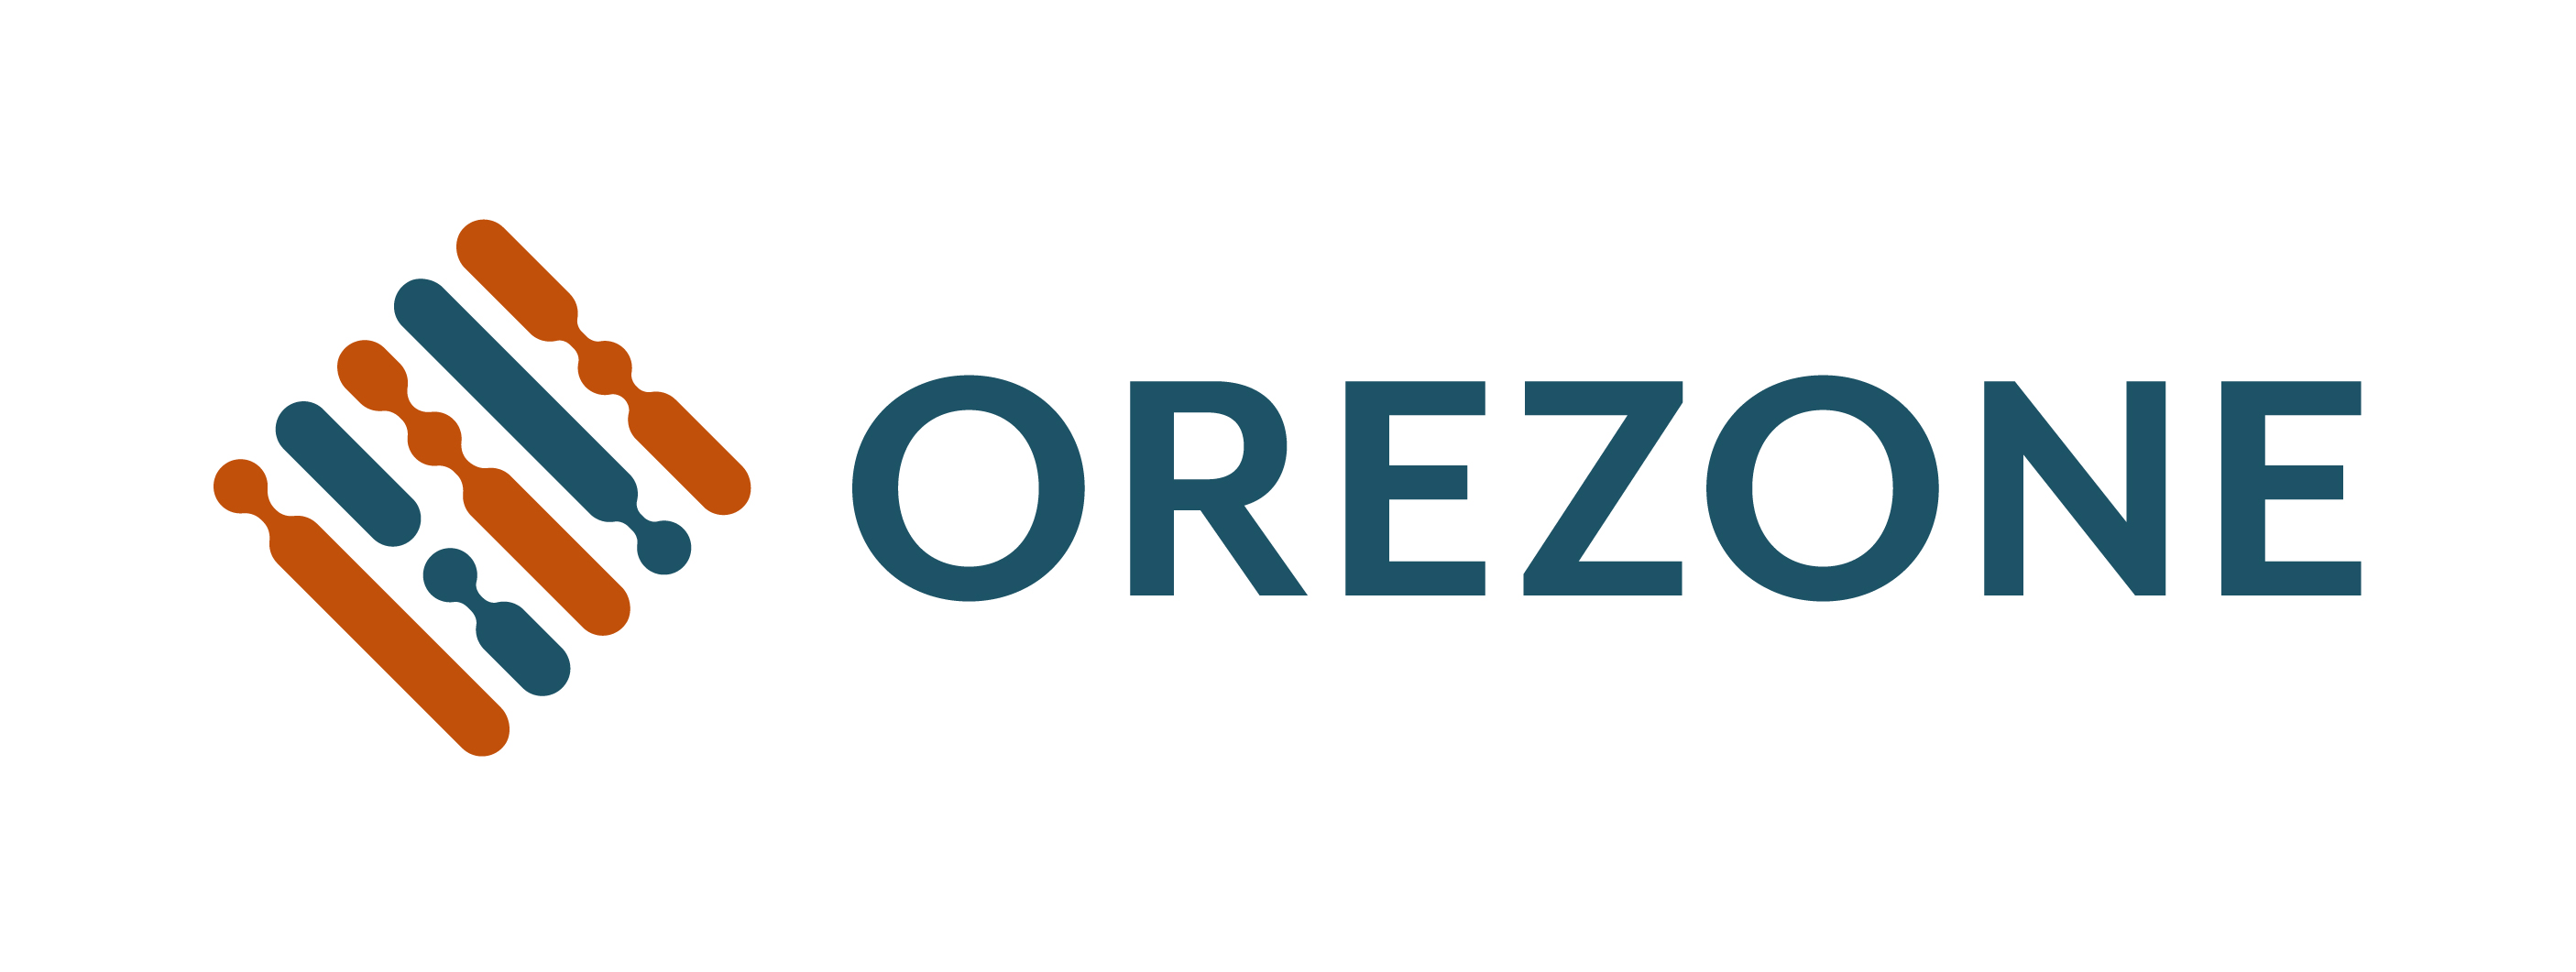 Orezone Grants Stock Options and Provides General Corporate Update